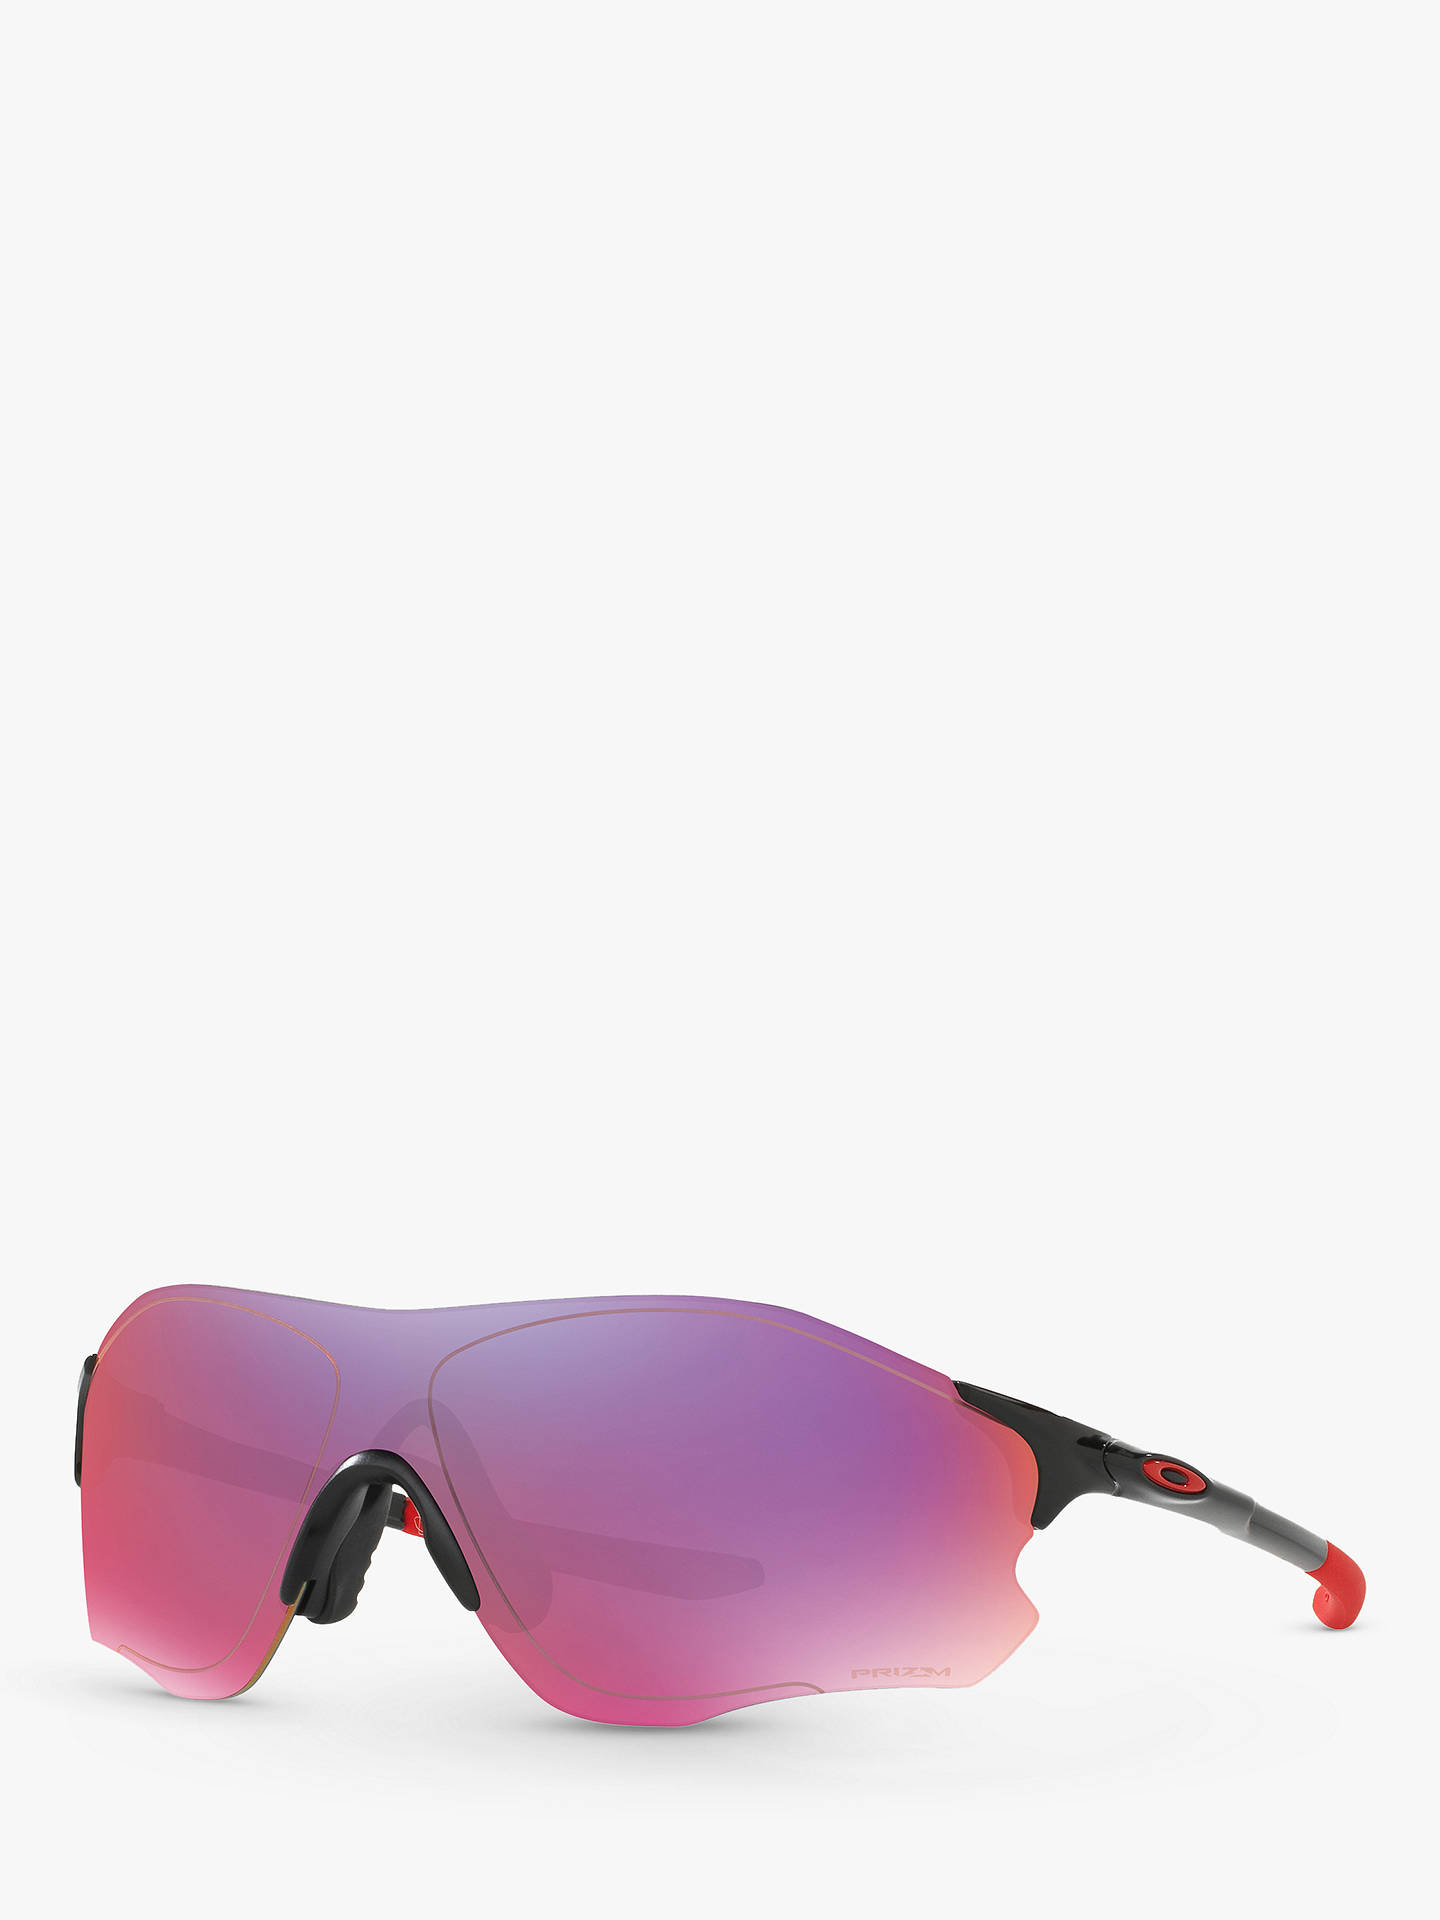 7139afc66c9 Oakley OO9308 Men s EV Zero Path Prizm Rectangular Sunglasses at ...